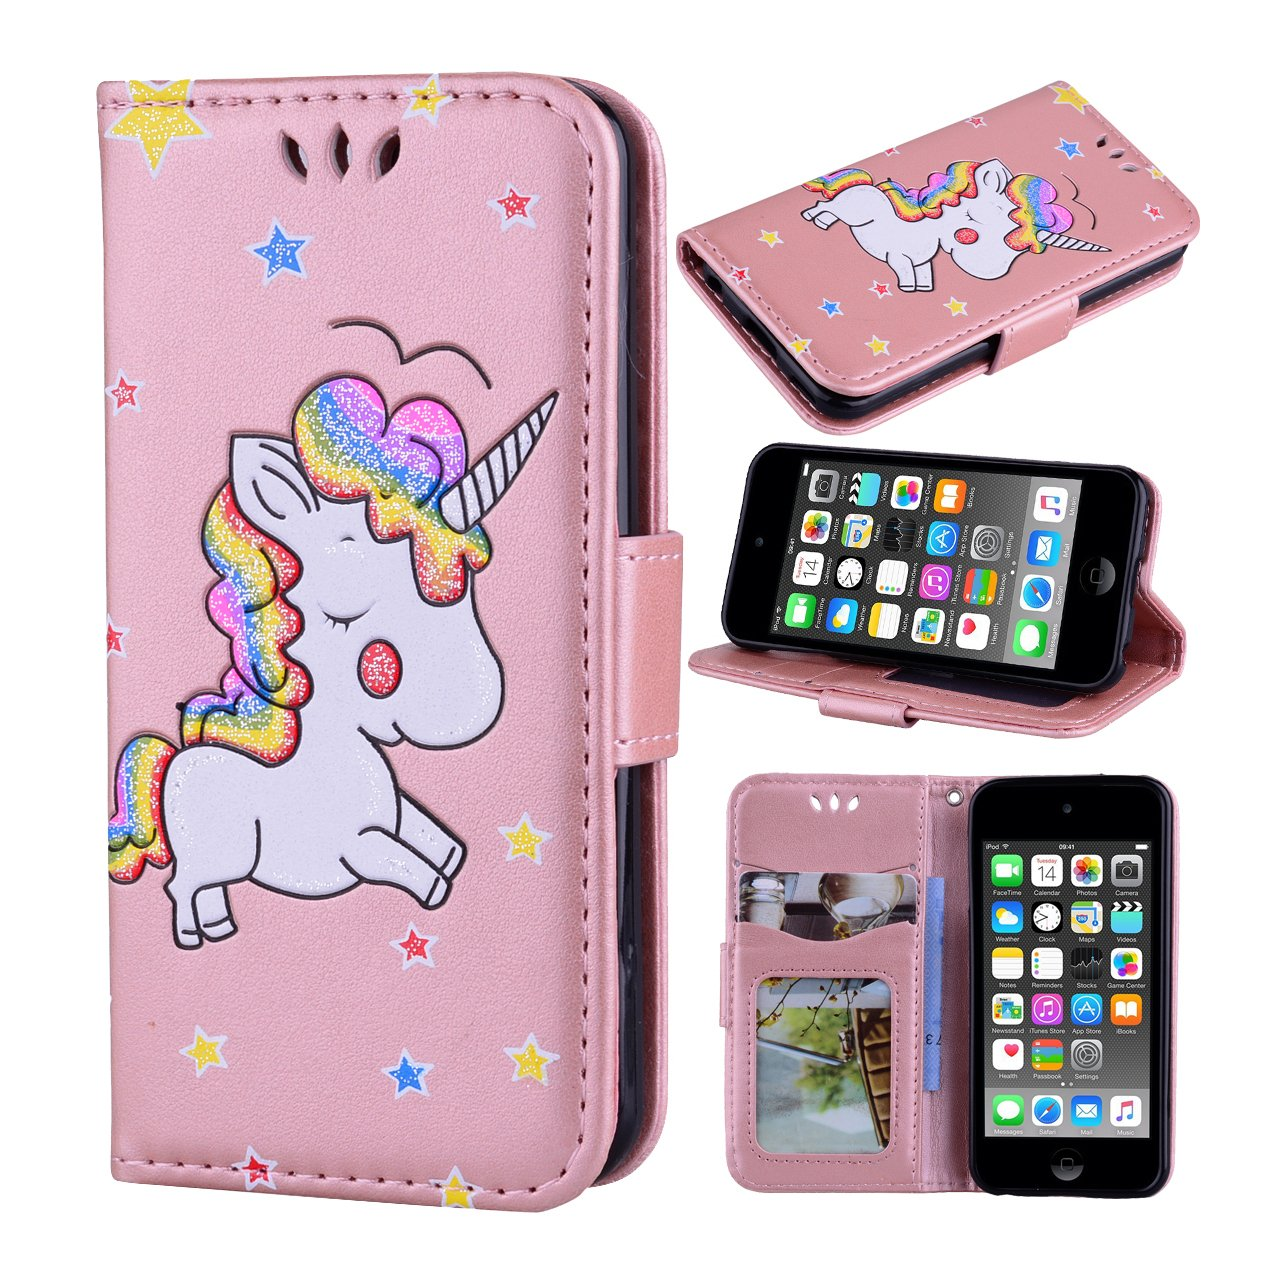 on sale 03ced ae378 Cheap 3d Bling Ipod Touch Cases, find 3d Bling Ipod Touch Cases ...